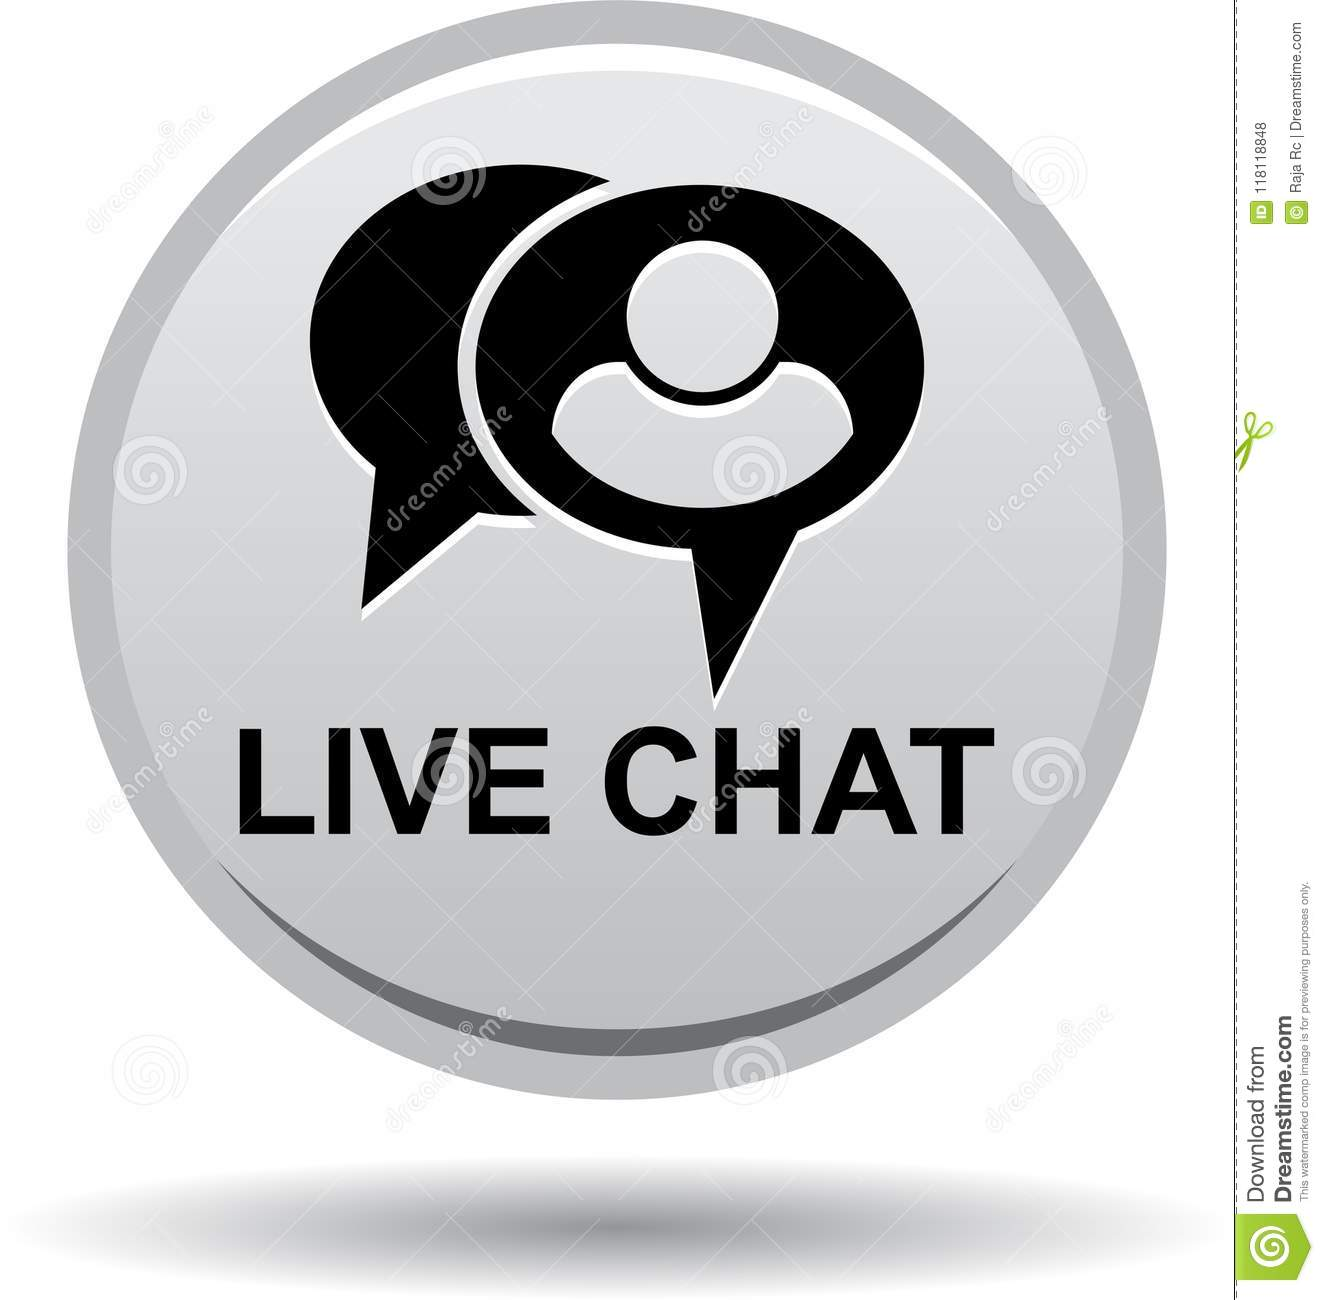 Live Chat Icon Web Button Gray Stock Vector - Illustration